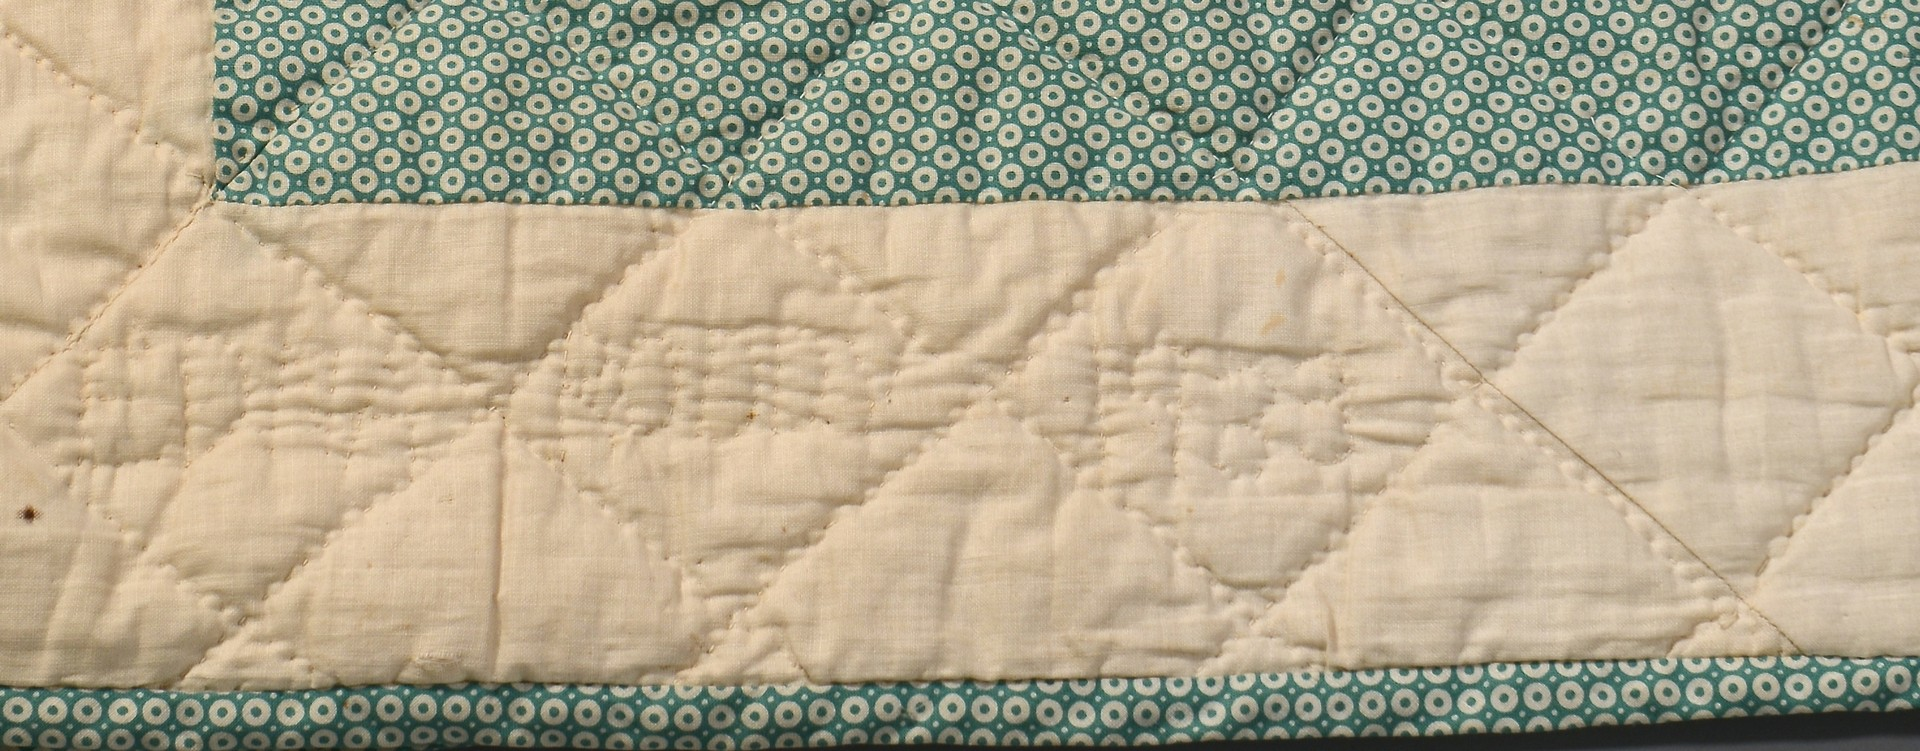 Lot 849: Group of 5 quilts, 1 signed